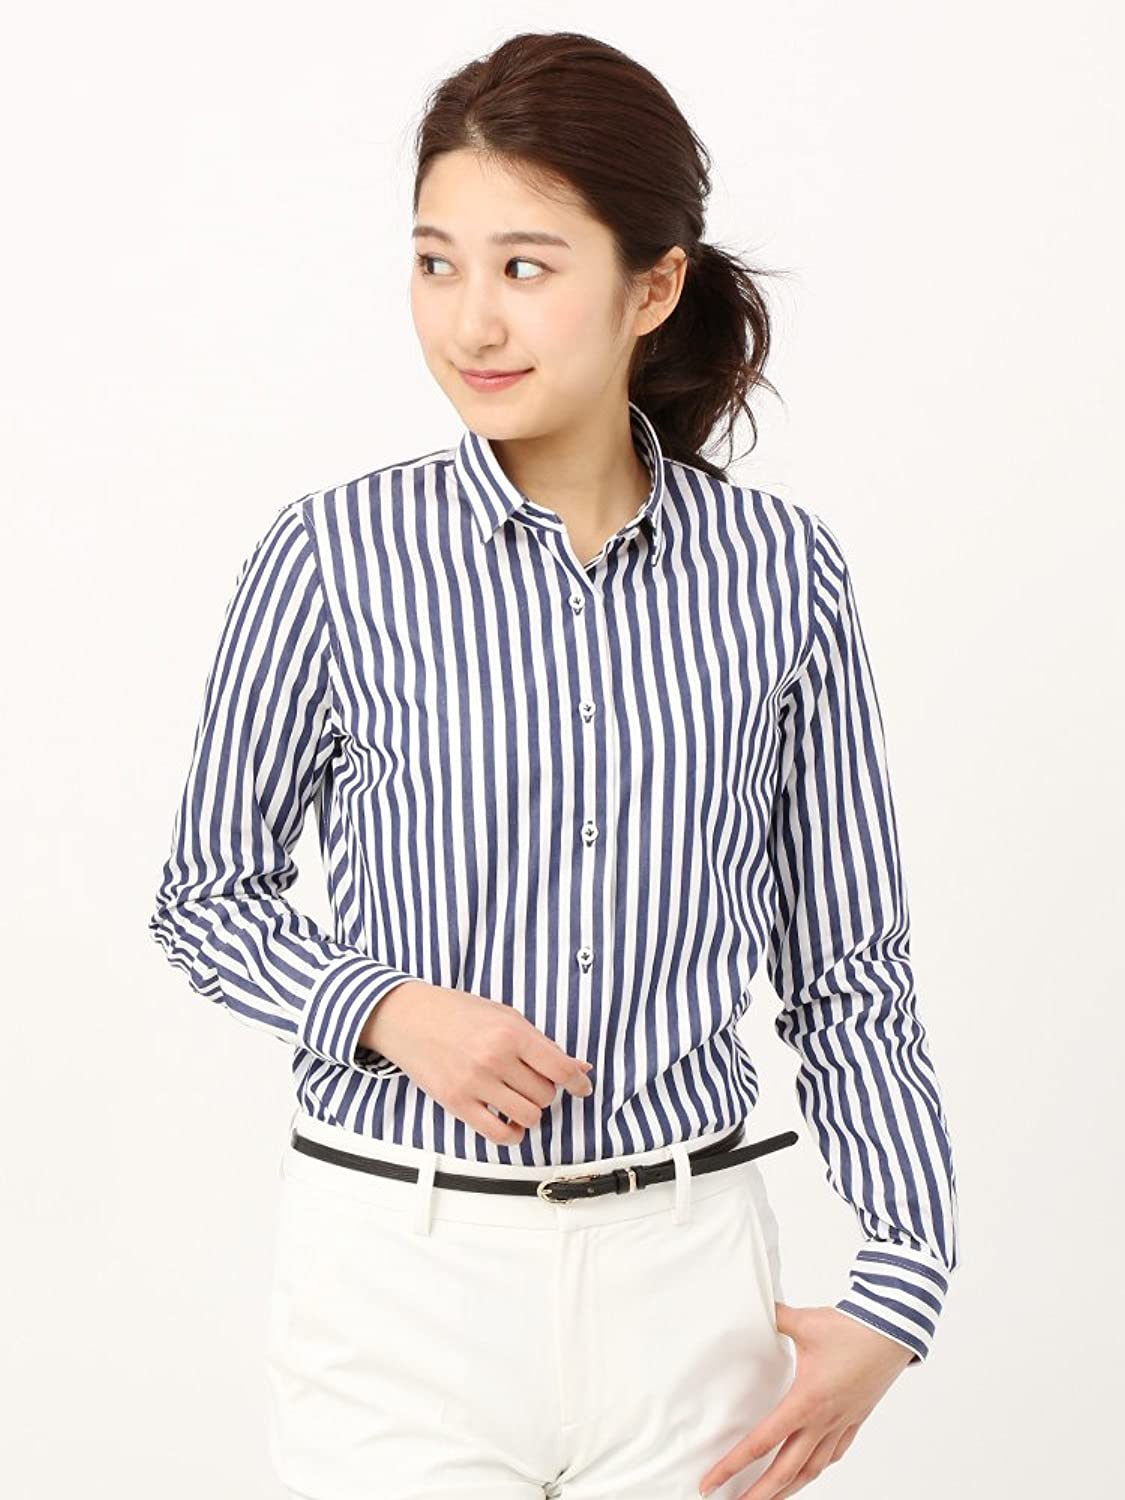 THE SUIT COMPANY(ザ スーツカンパニー)- High Quality Blouse